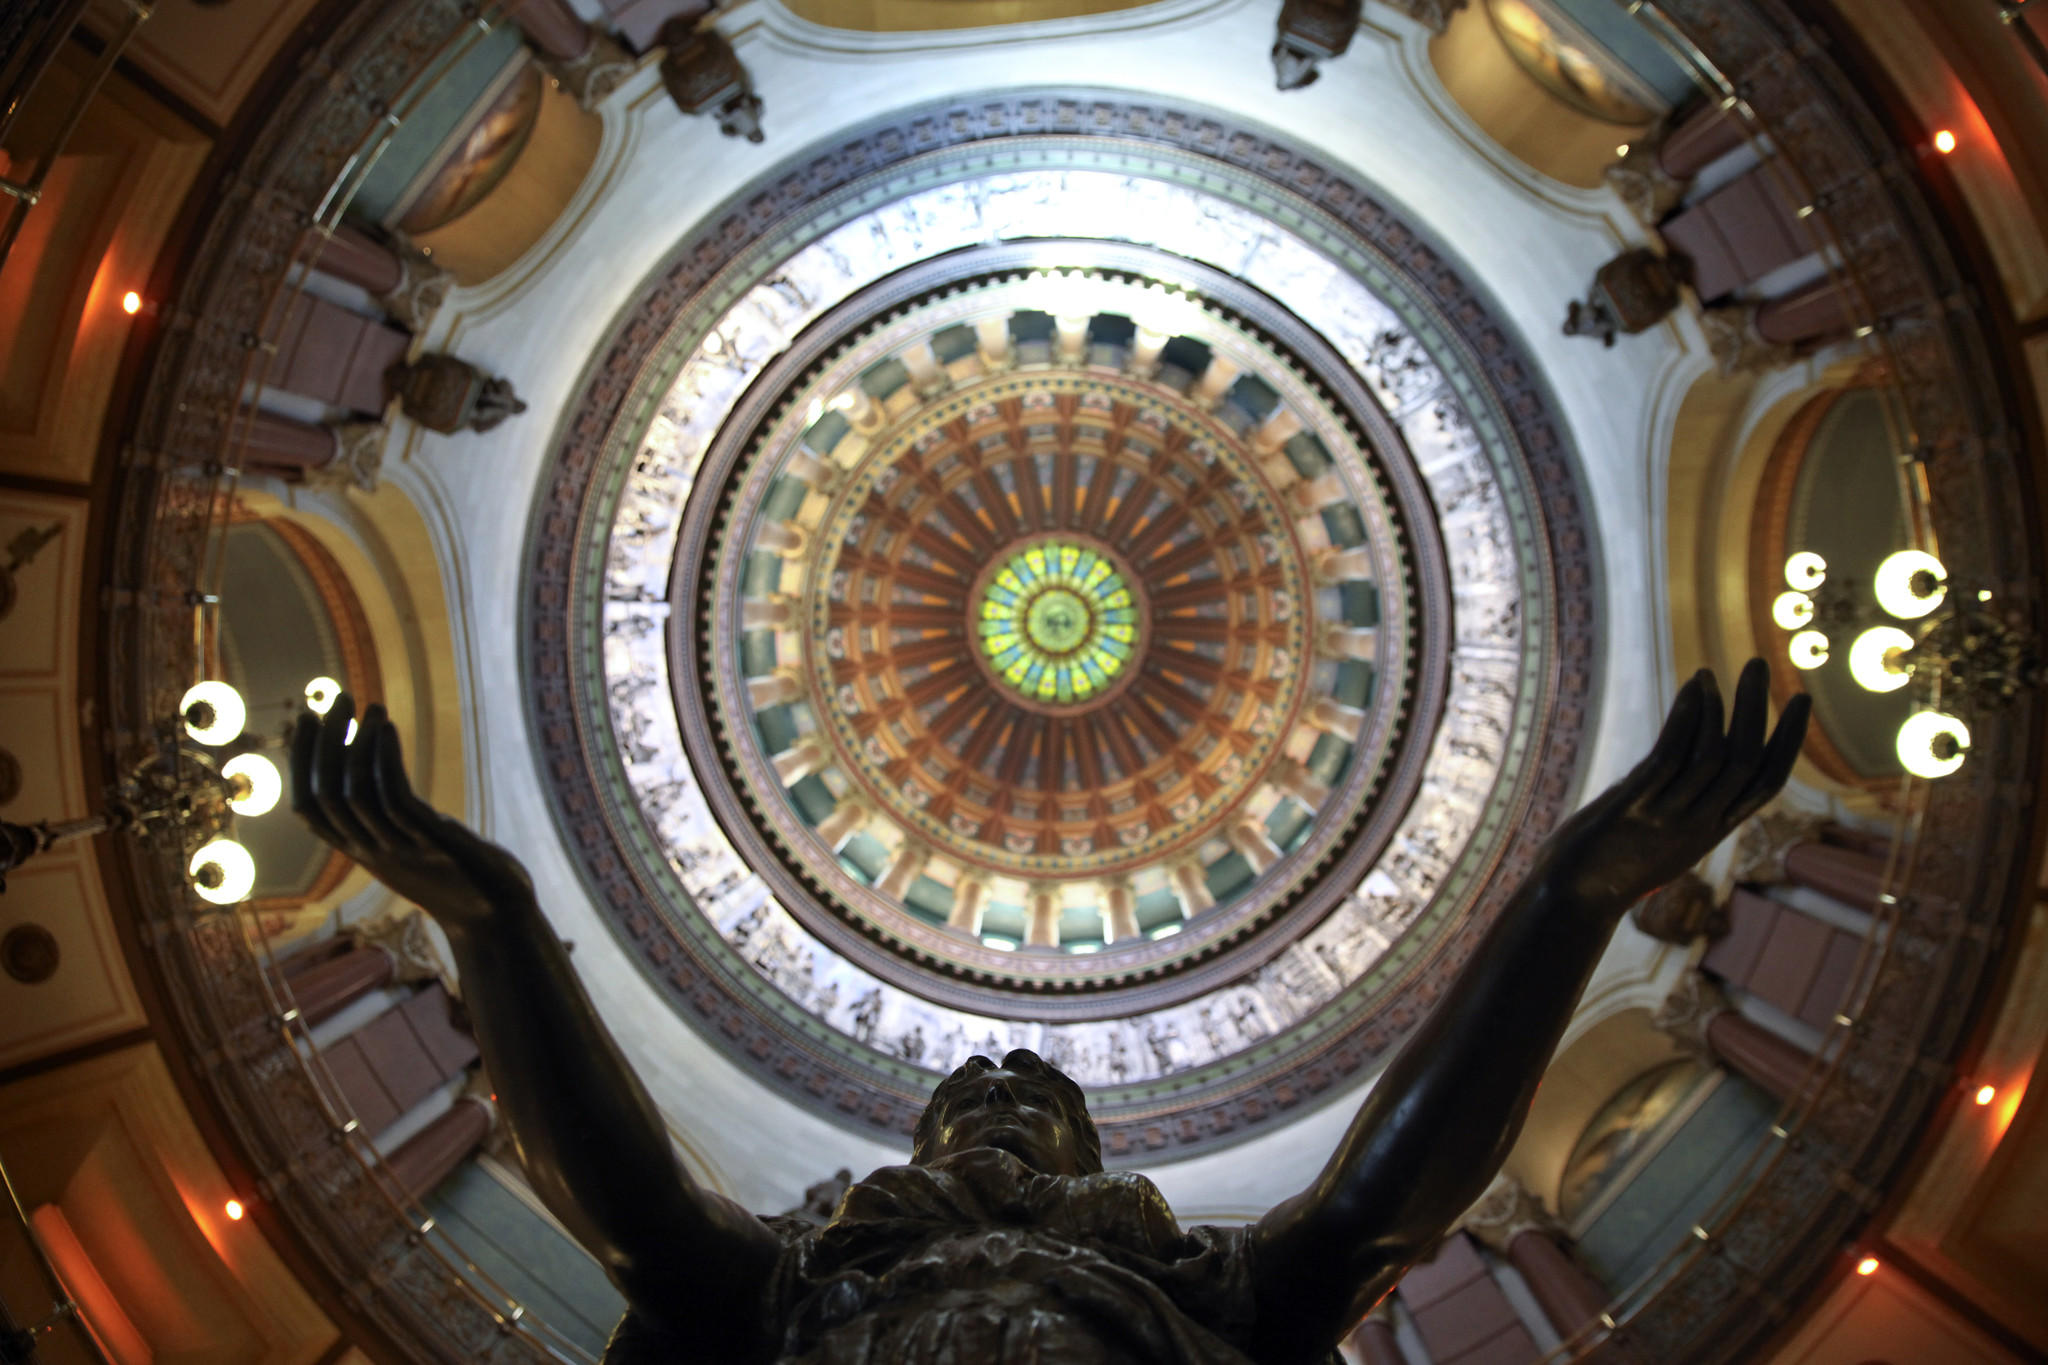 The ornate domed ceiling at the Illinois State Capitol.